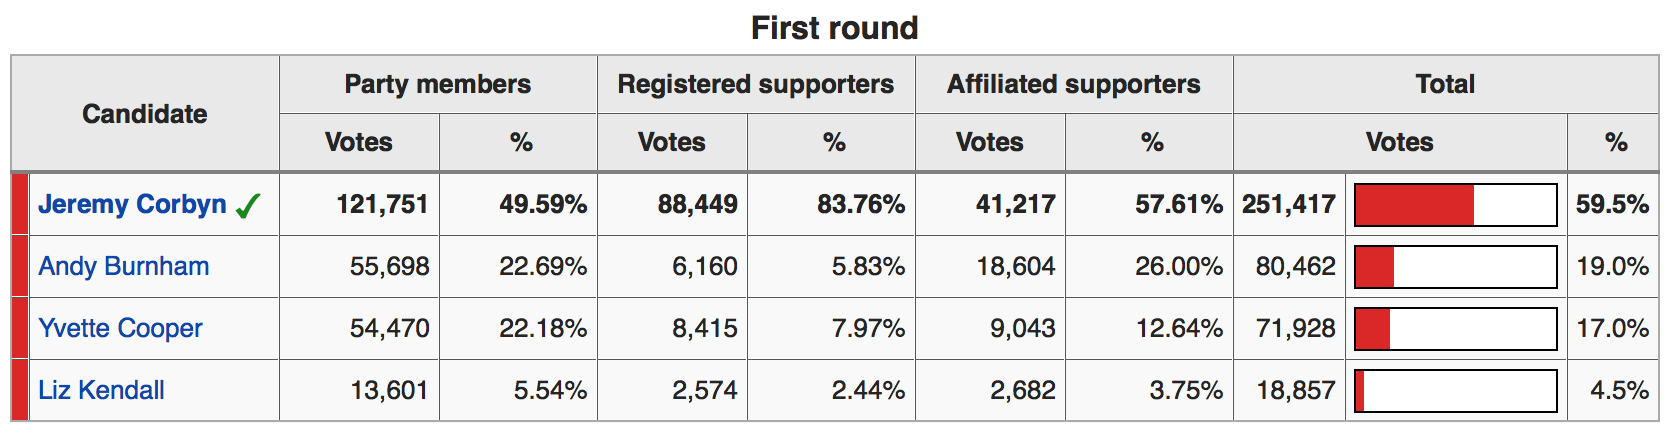 Source: https://en.wikipedia.org/wiki/Labour_Party_(UK)_leadership_election,_2015#Result